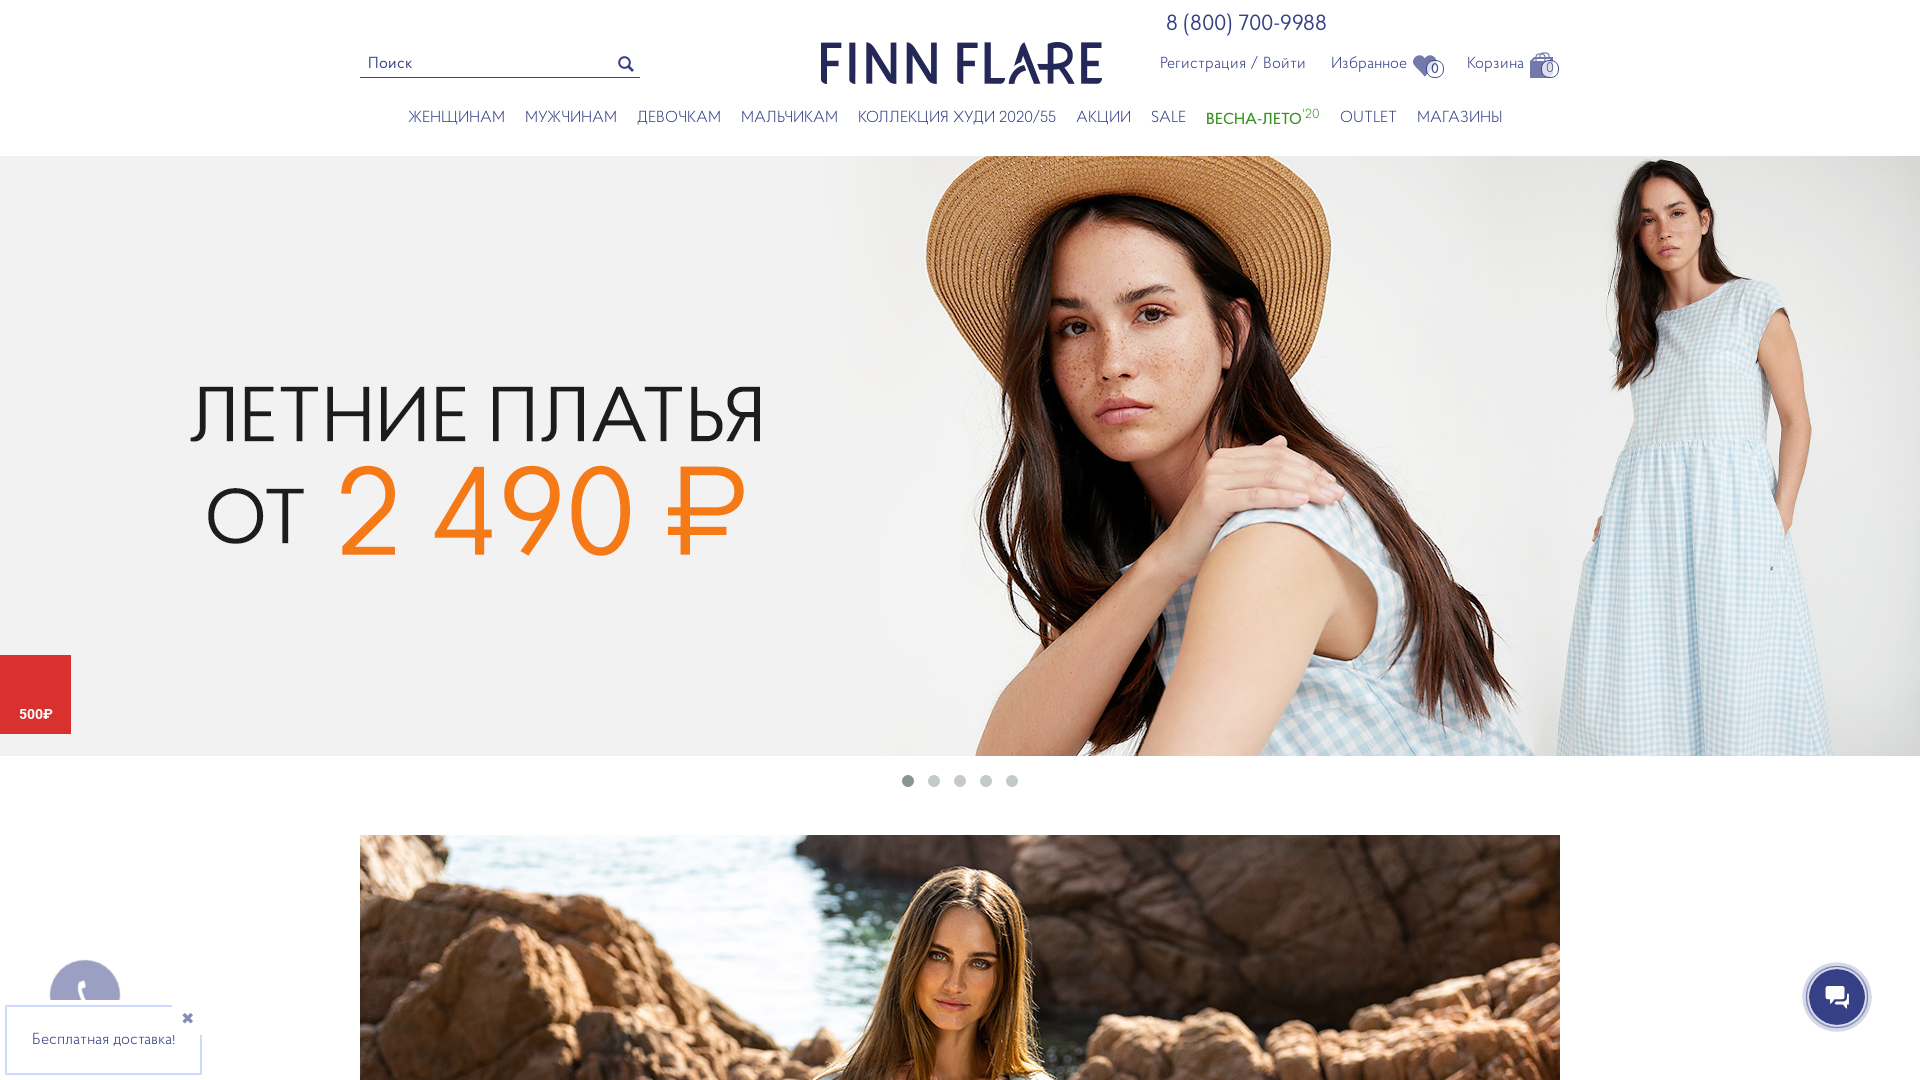 Finn Flare website